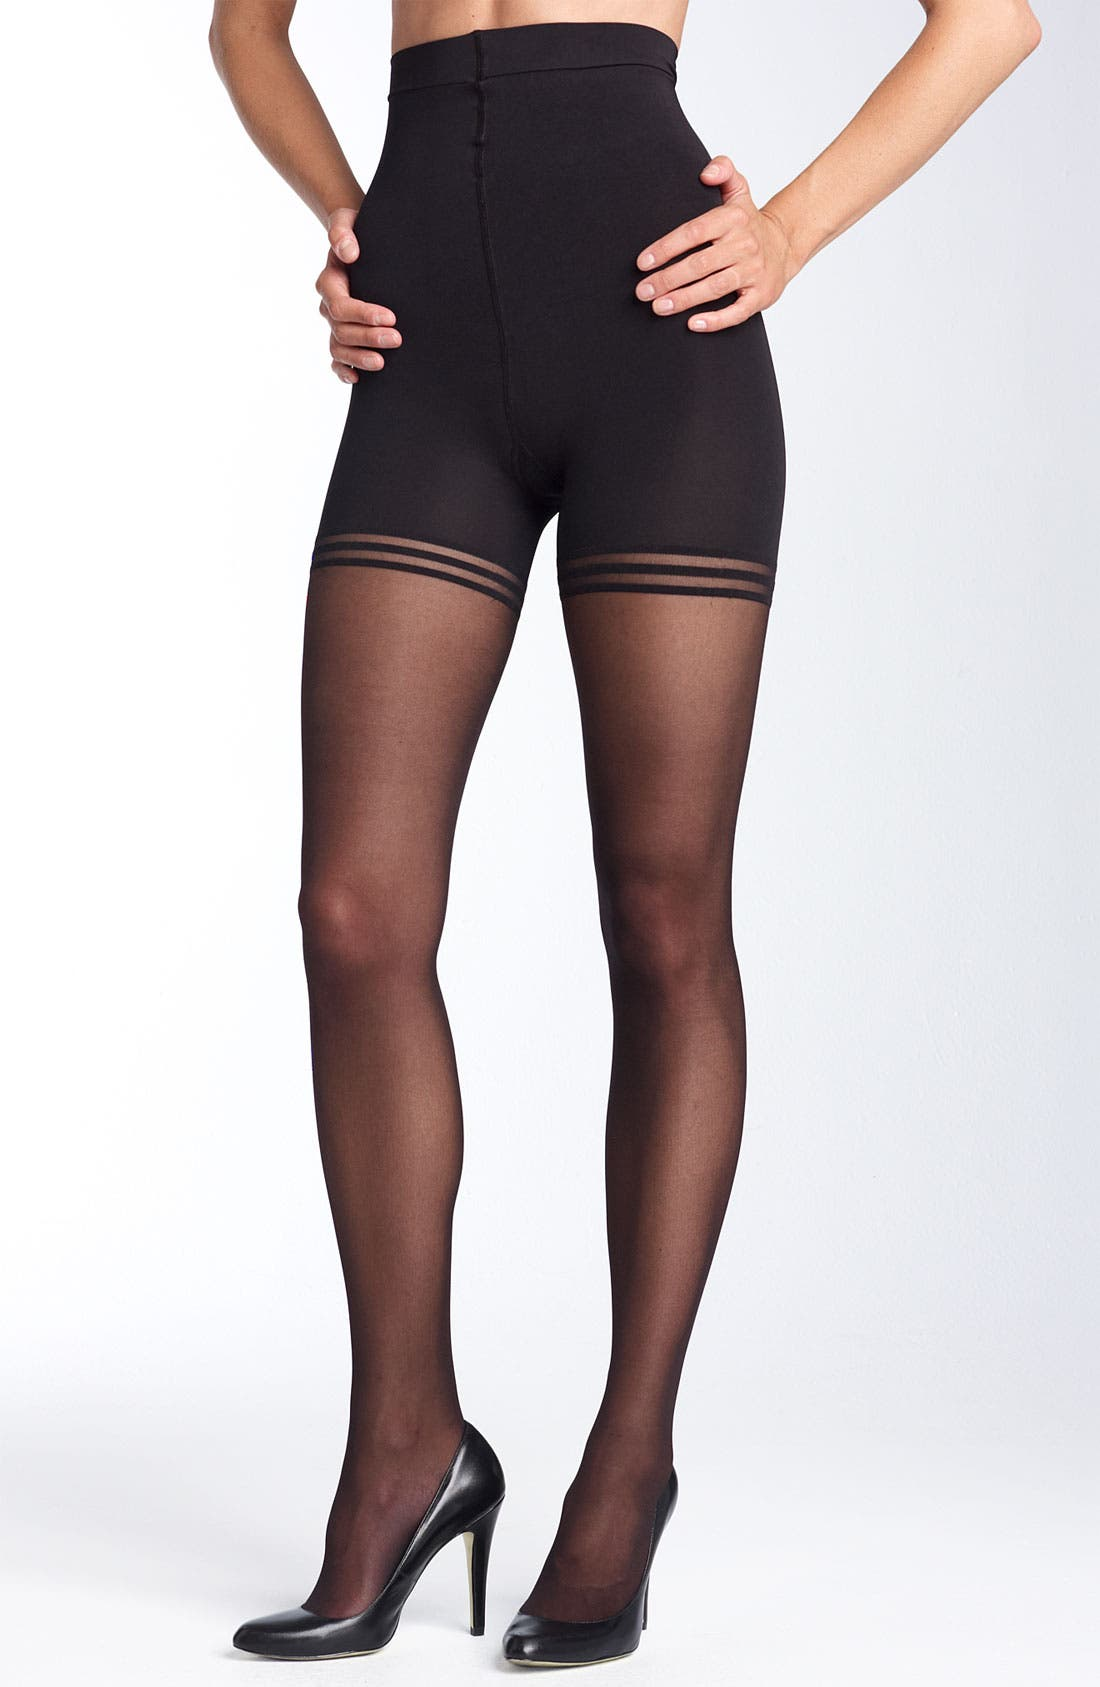 Main Image - Donna Karan 'Sheer Satin Ultimate Toner' Pantyhose